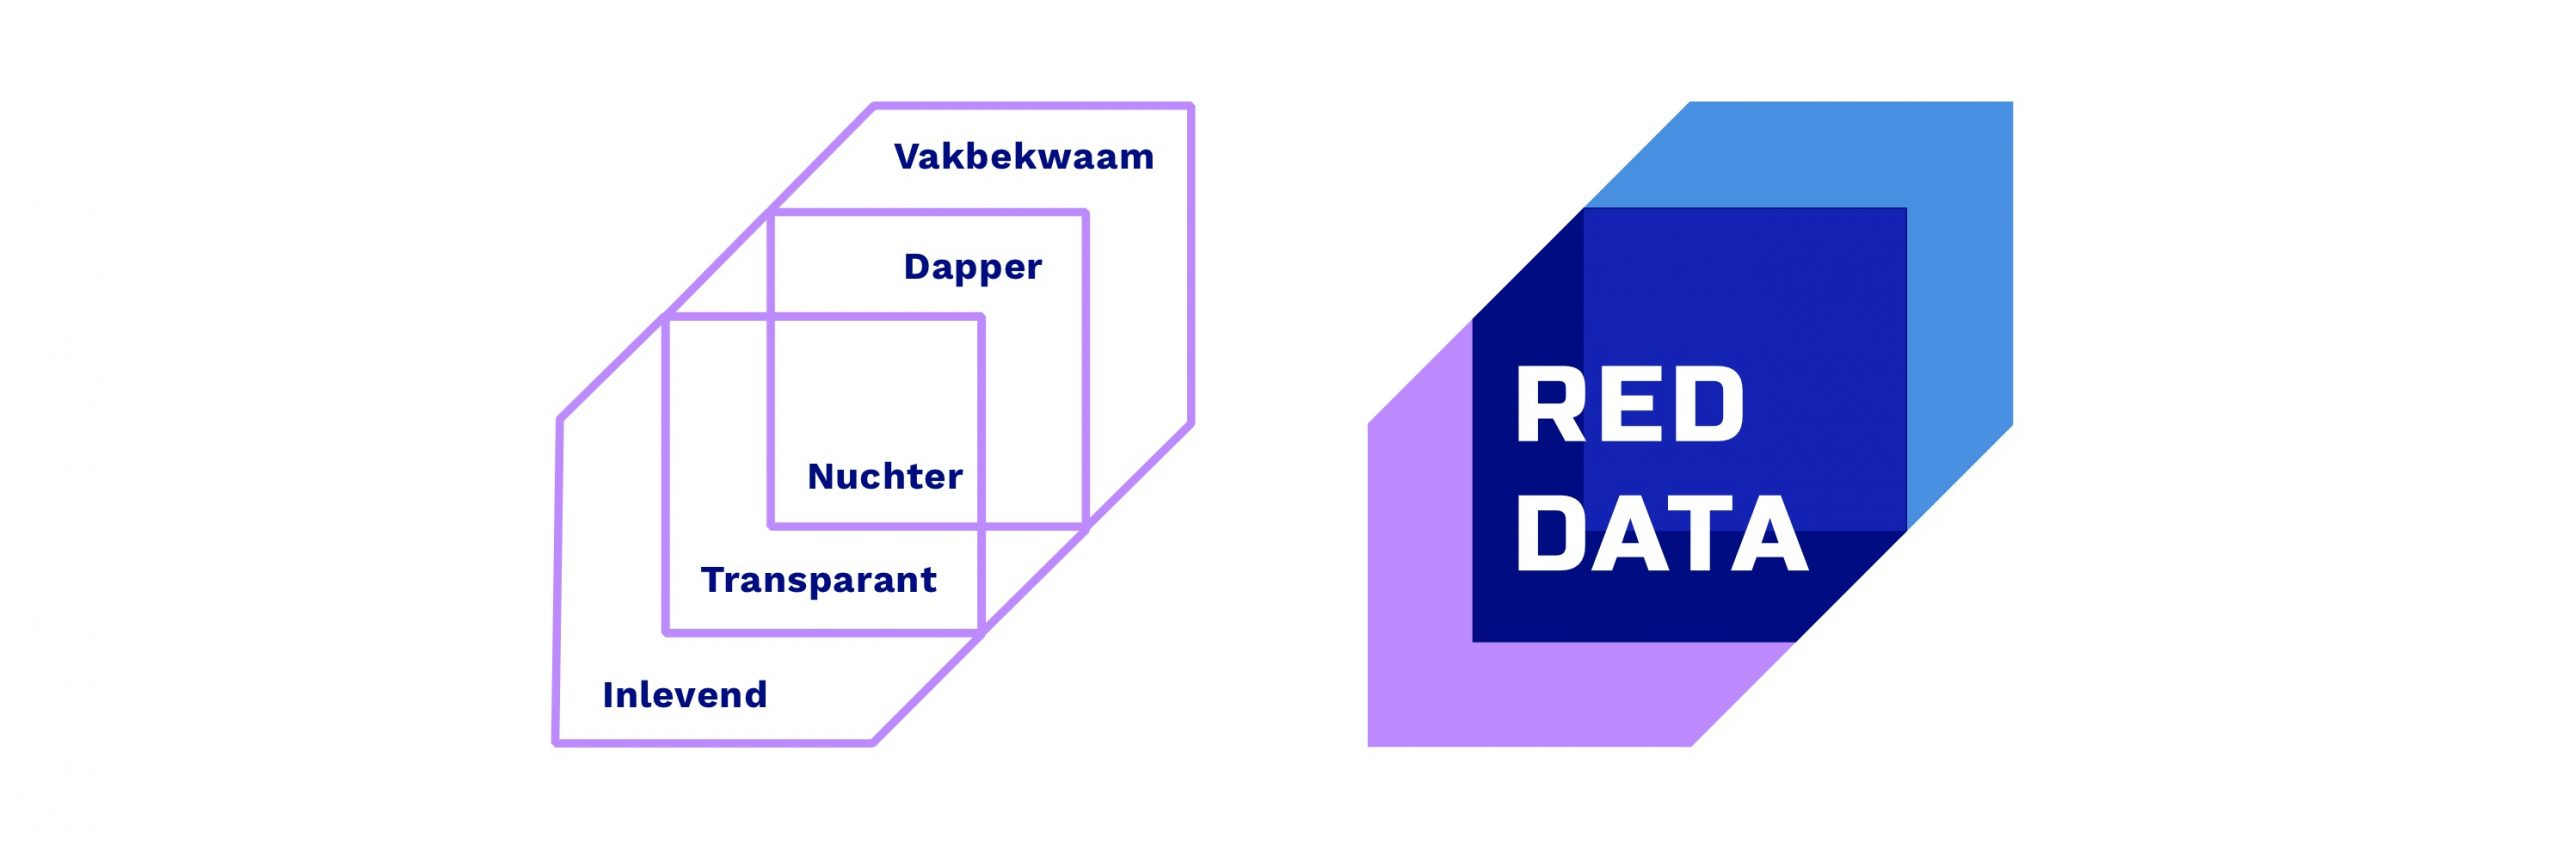 Kernwaarden Red Data